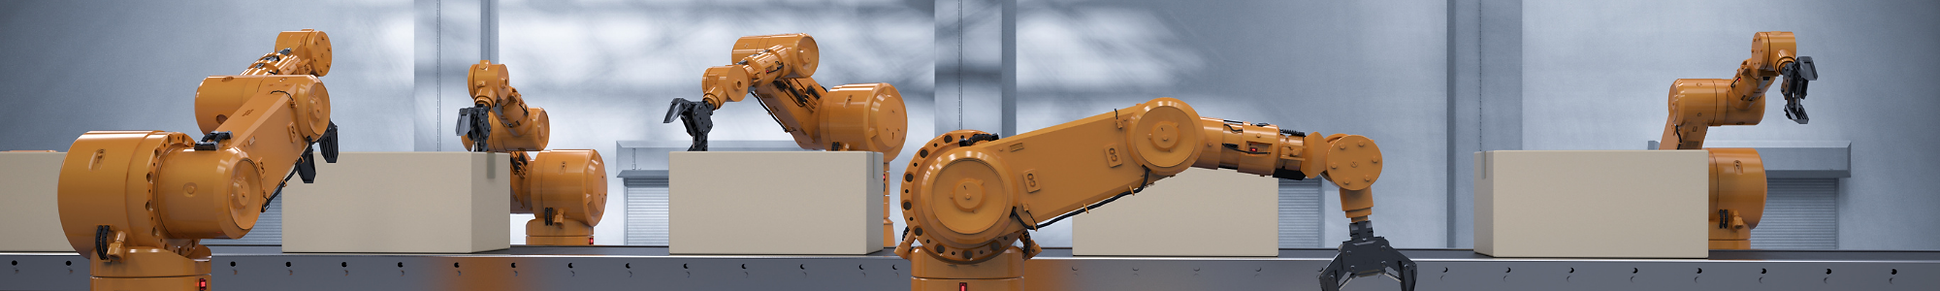 Automation Banner.png